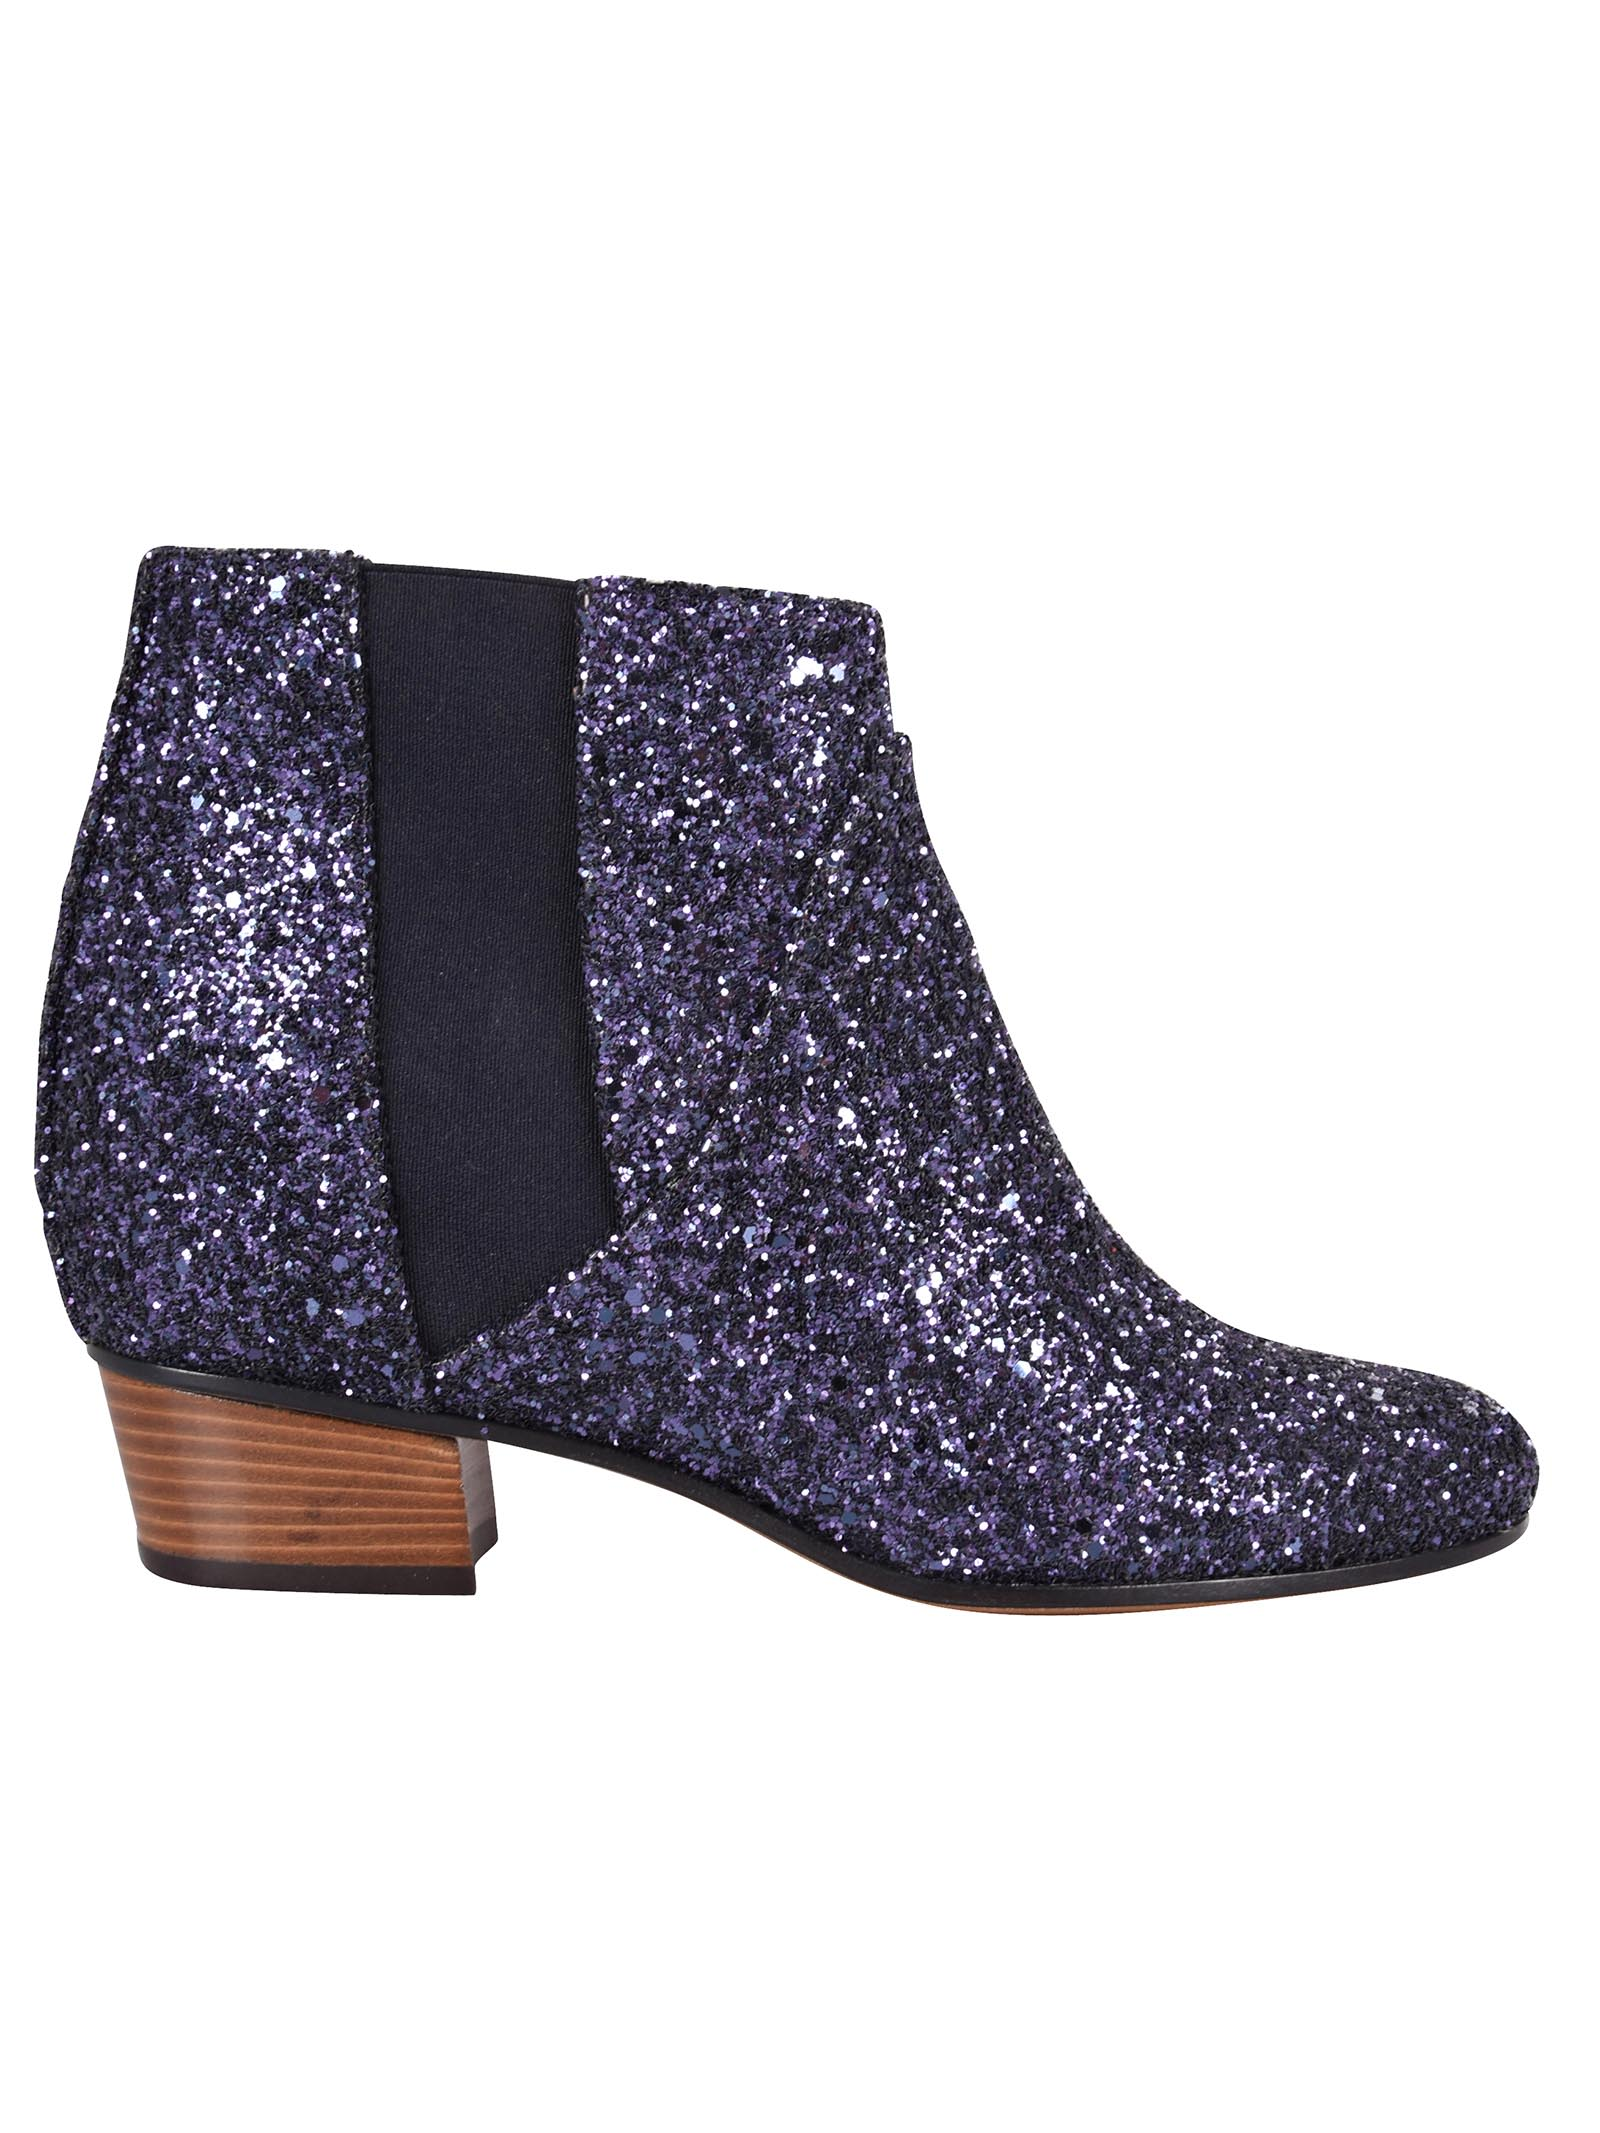 Dana Ankle Boots, Blue Glitter